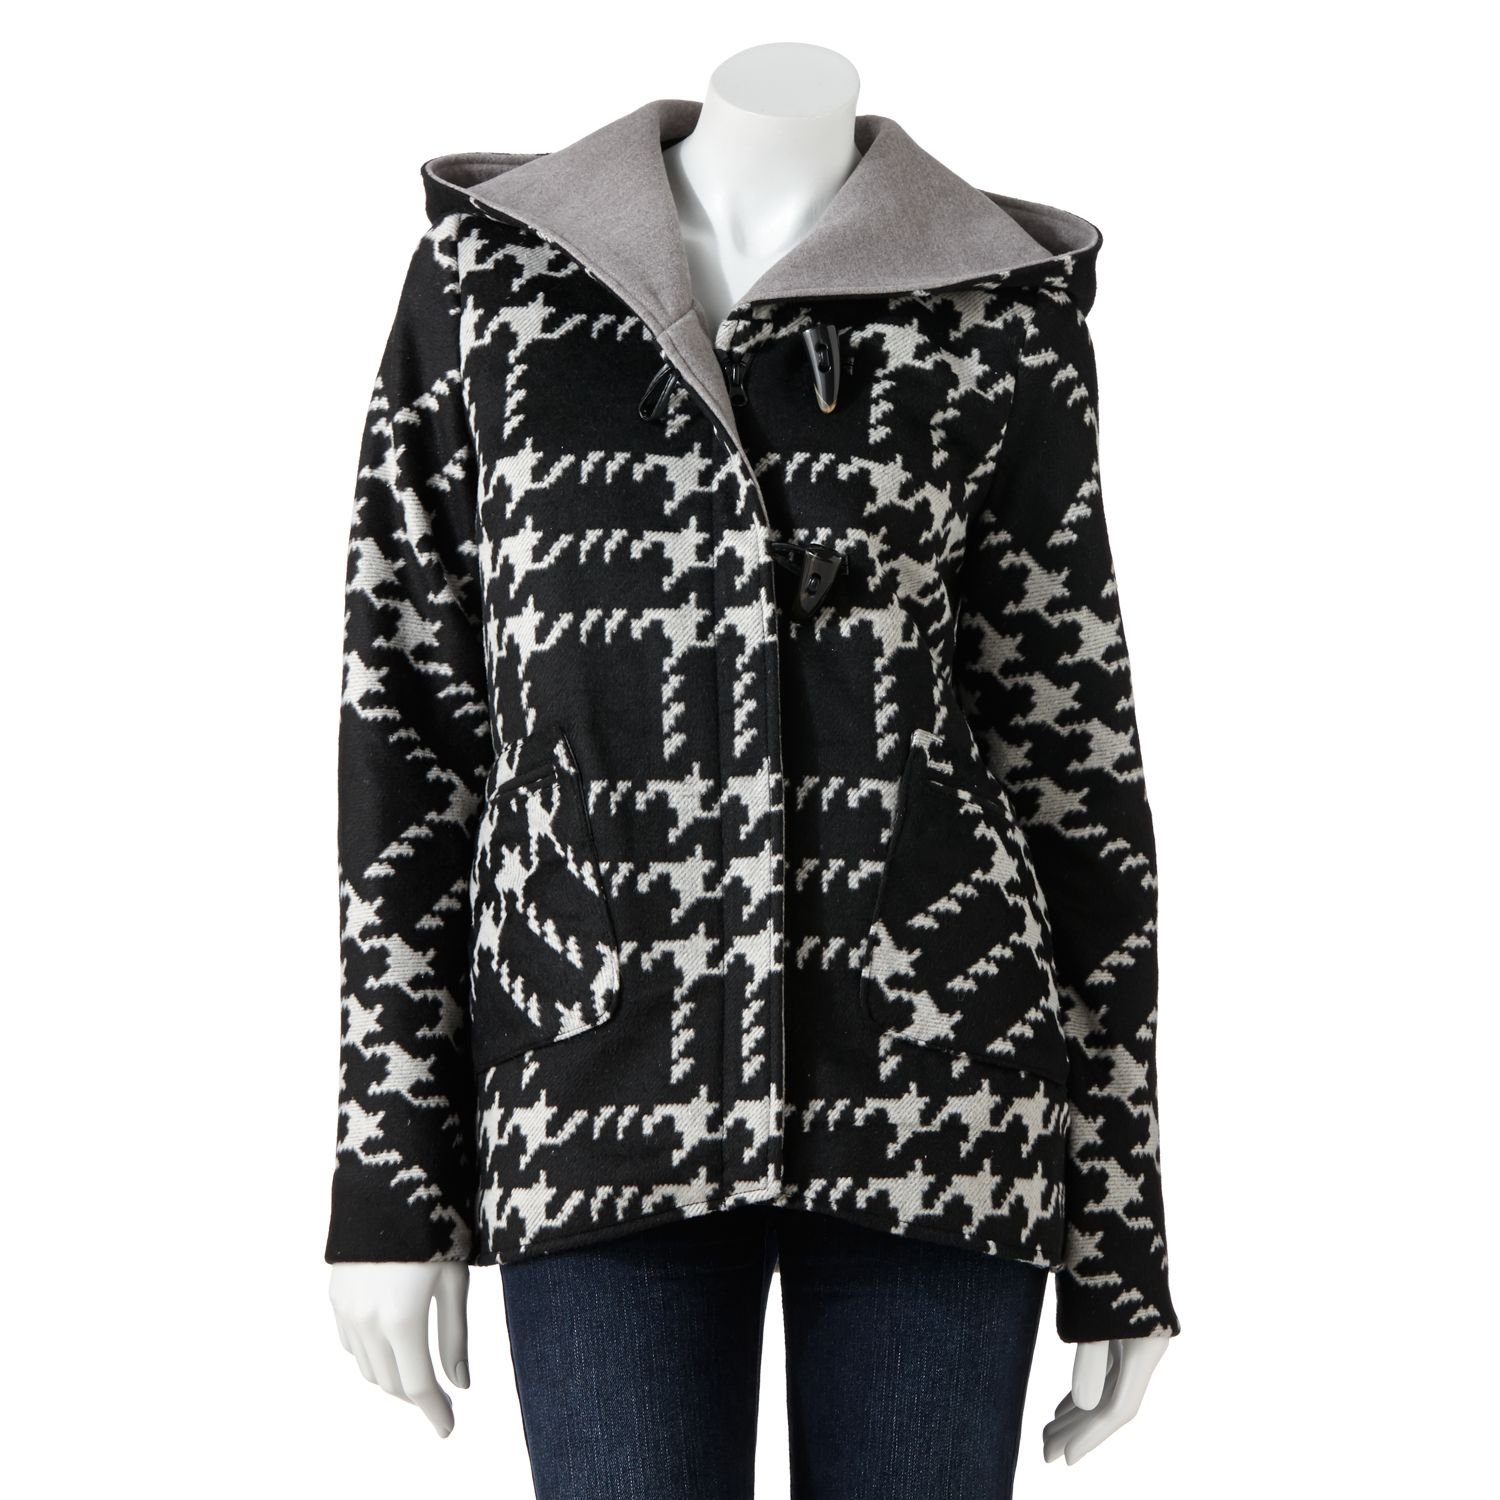 Krush Hooded Houndstooth Jacket - Women's